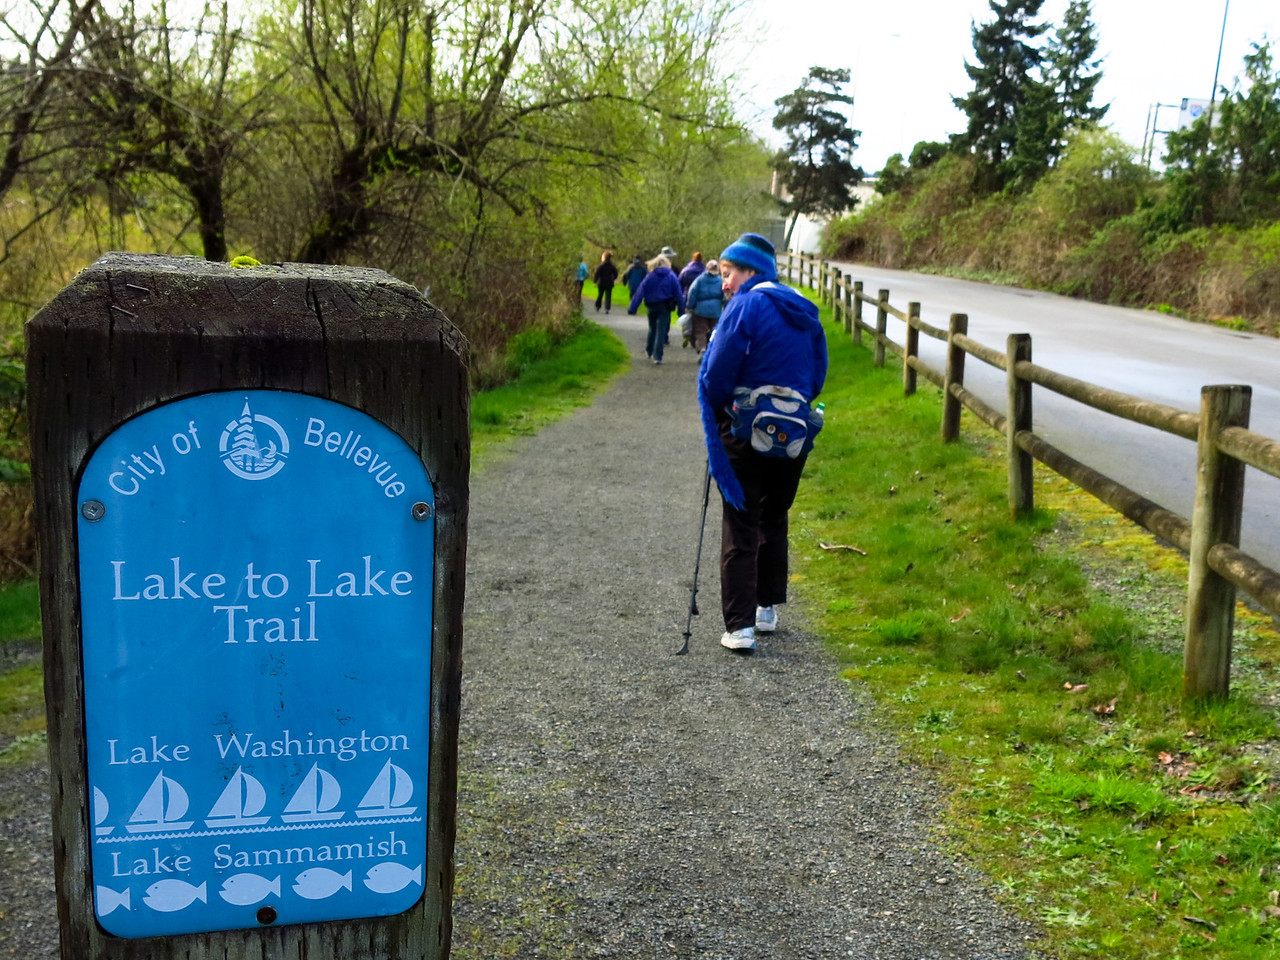 This is the beginning of the route, just south of the start at the South Bellevue Park and Ride.  The Park and Ride is east of Bellevue Way only a short distance north from the I-90 exit just east of the Mercer Island bridge.